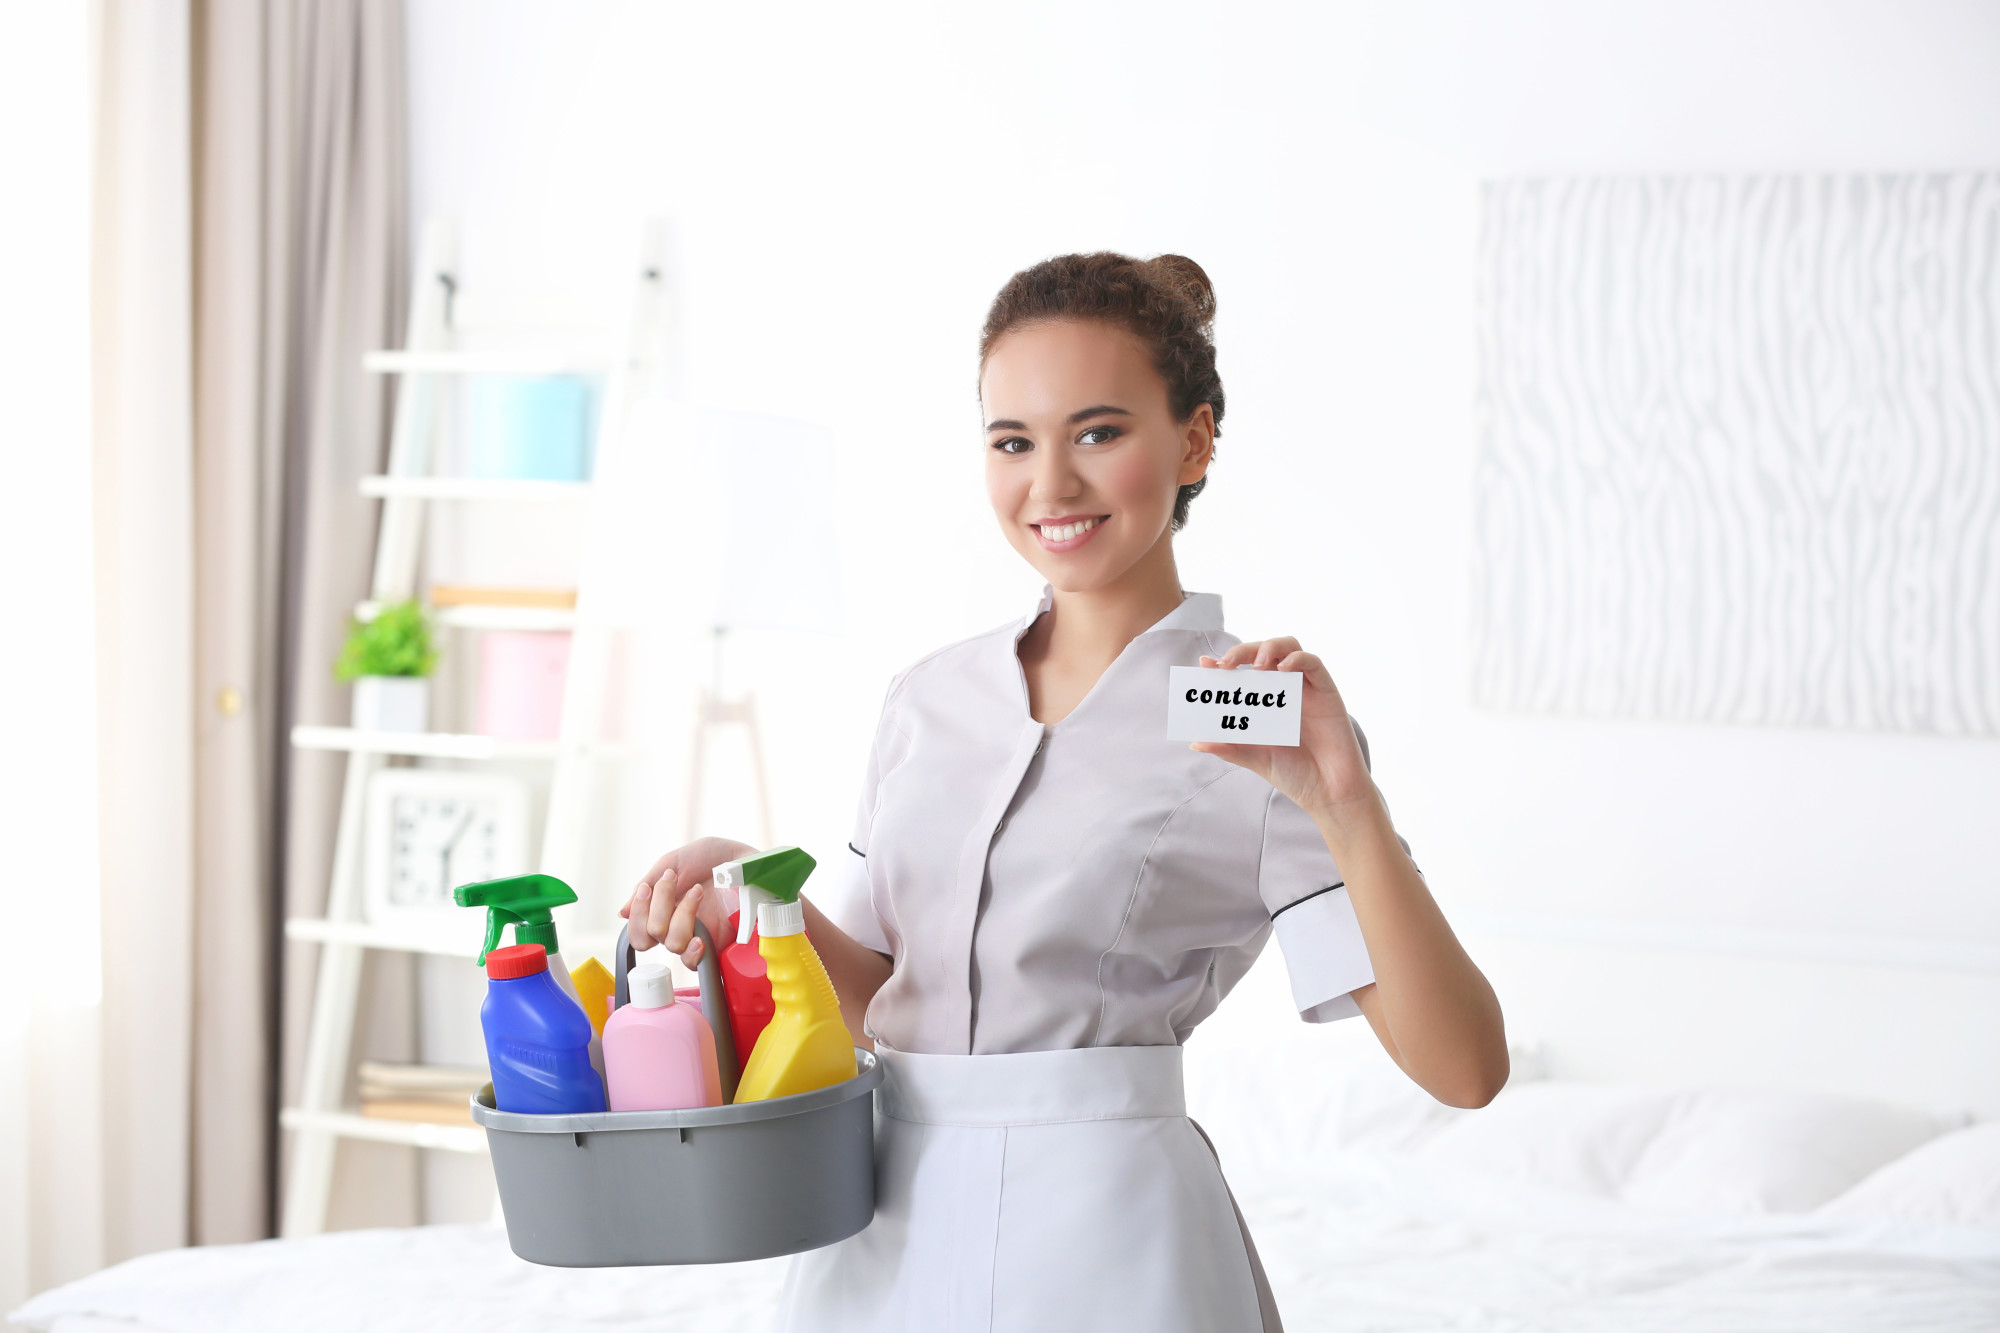 Residential House Cleaning Services | The Maids